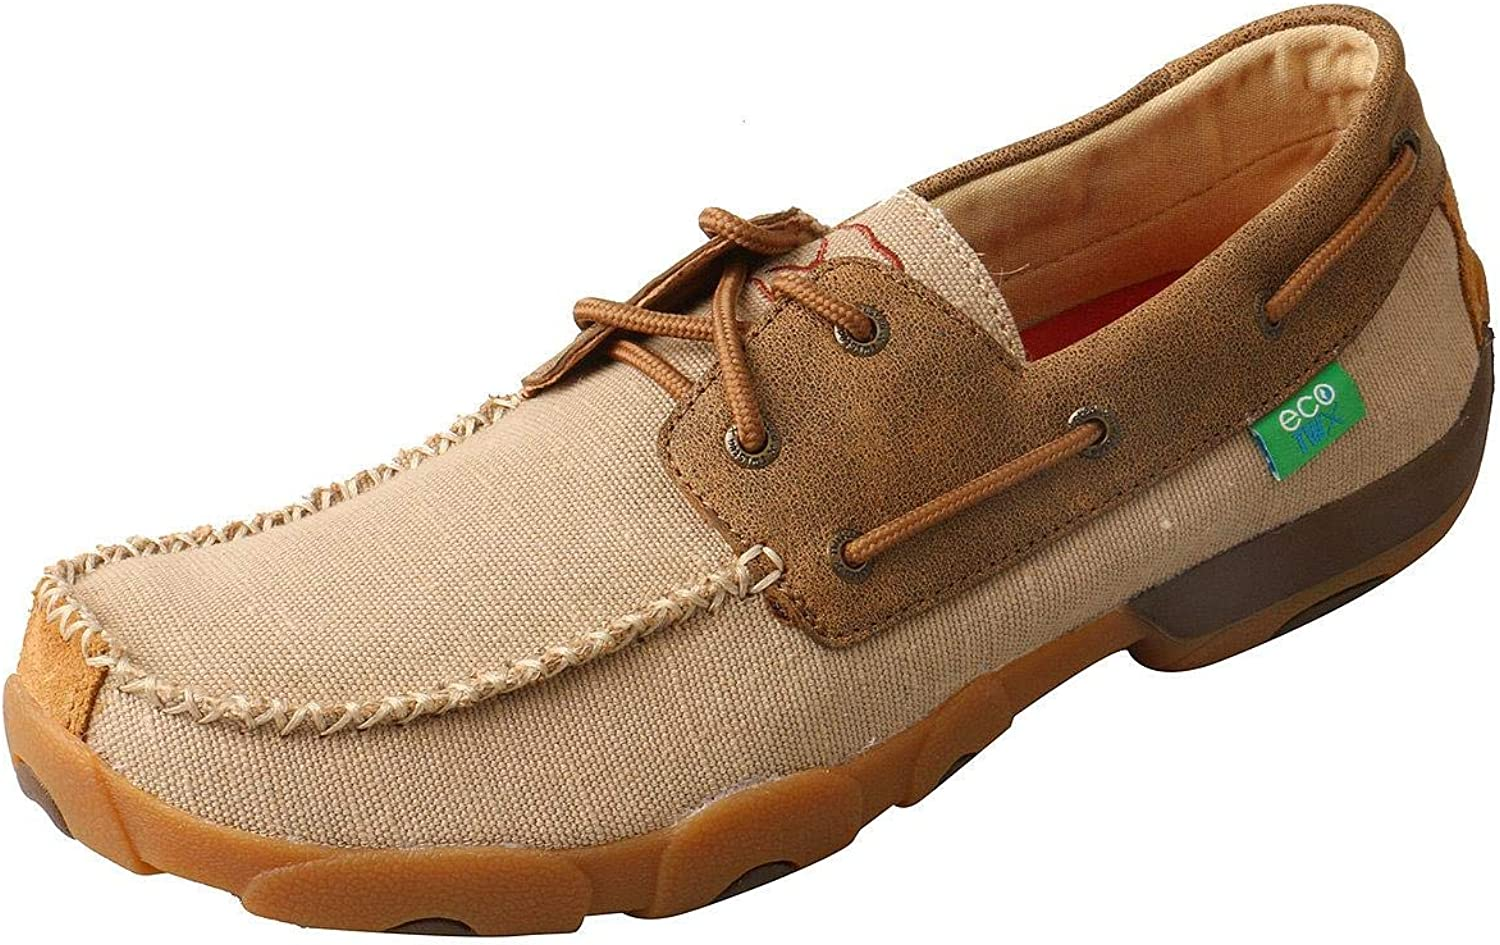 Twisted X Men's Boat Moccasin shoes Moc Toe